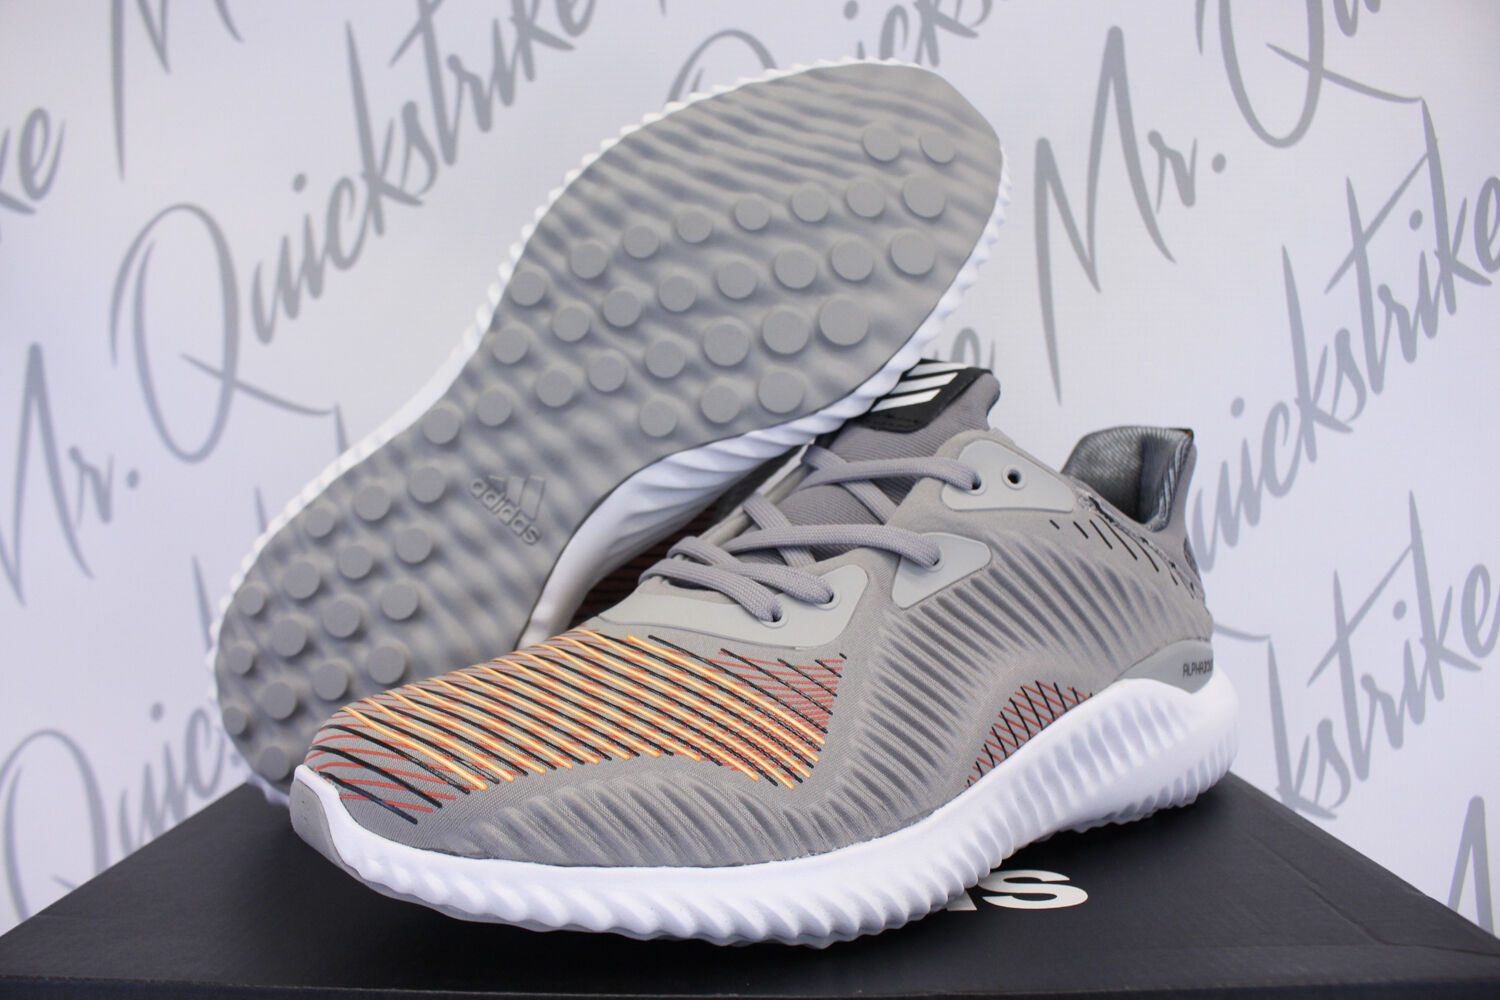 ADIDAS ALPHABOUNCE HPC SZ 12 CORE MULTI SOLID GREY UTILITY CORE 12 BLACK BB9049 55162a